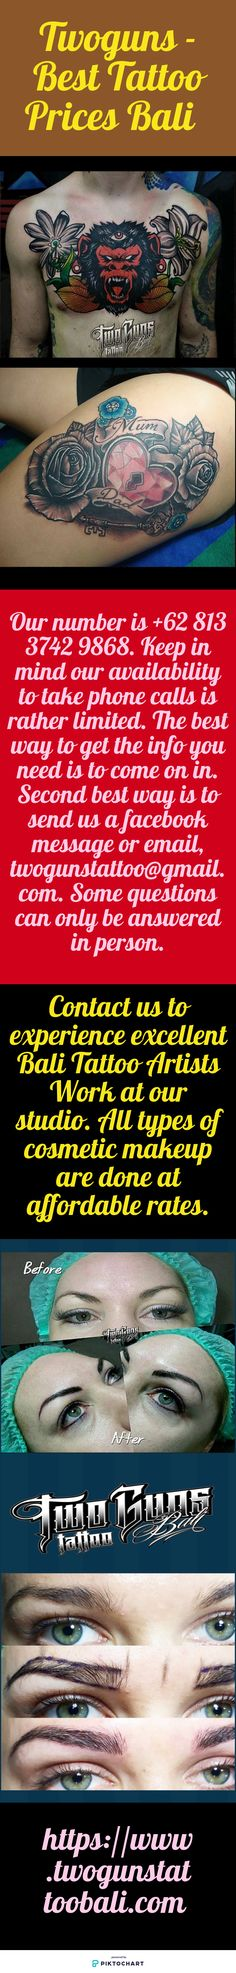 Cosmetic Tattoo is a great help to the people who can't daily go to parlor due to no sight. Visit Twoguns - Best Tattoo Prices Bali today. Visit website: http://www.twogunstattoobali.com/